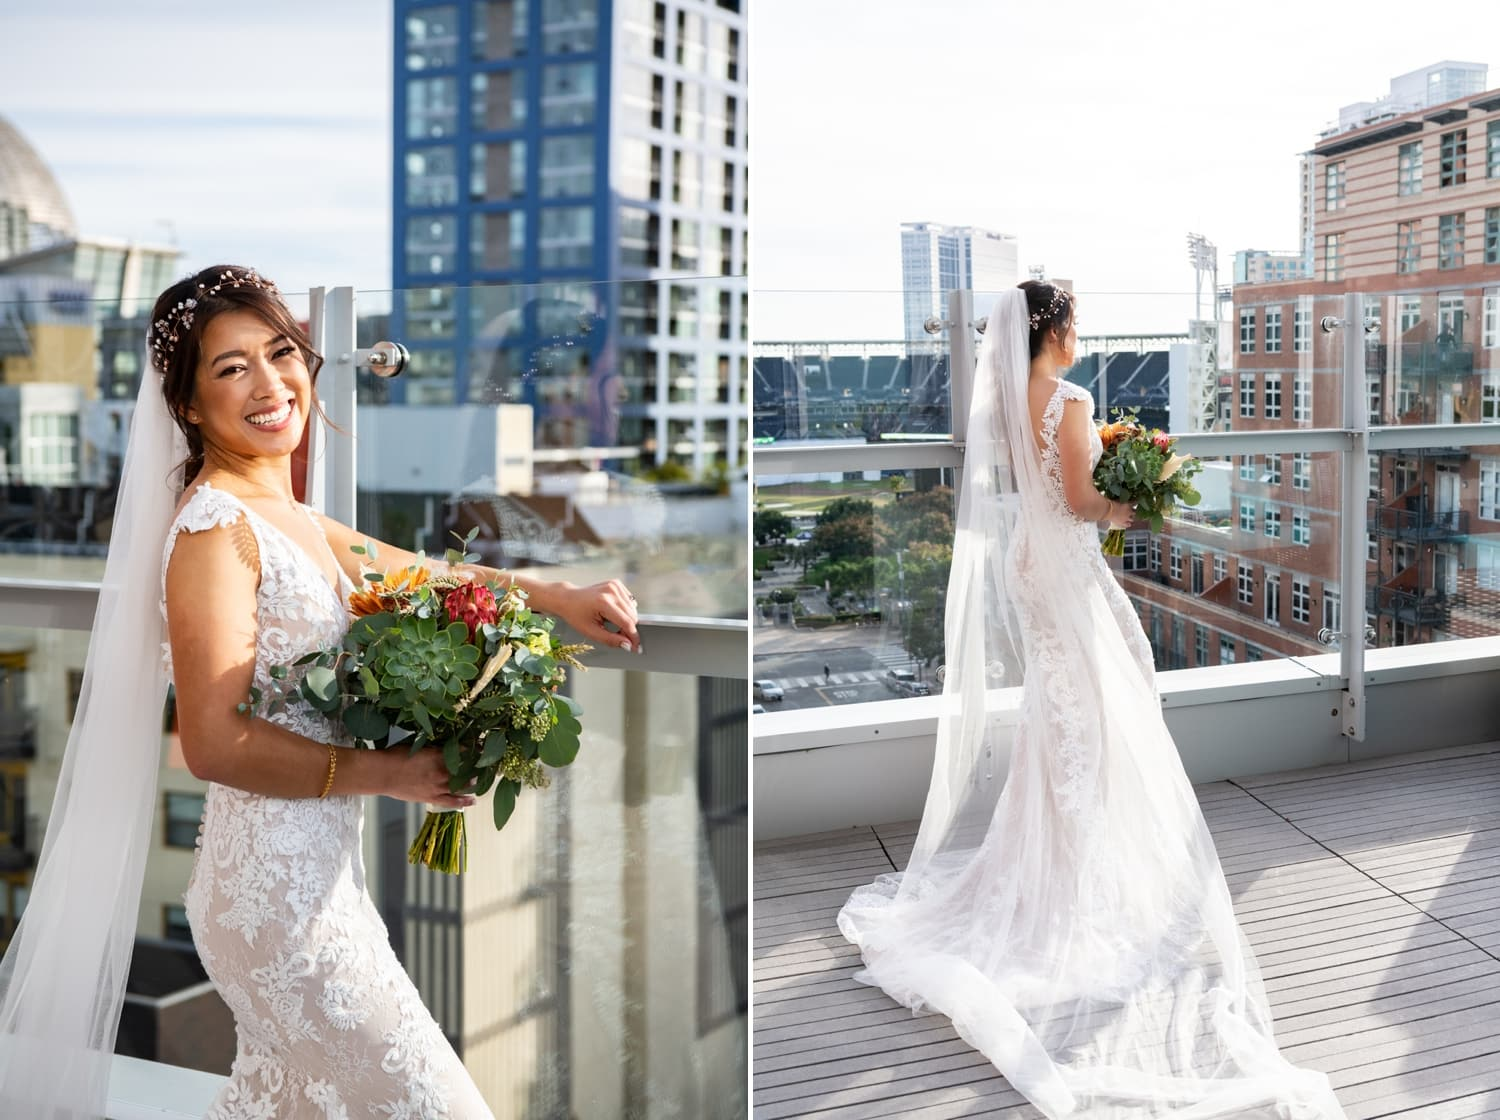 Bride on a balcony in downtown San Diego before her wedding.